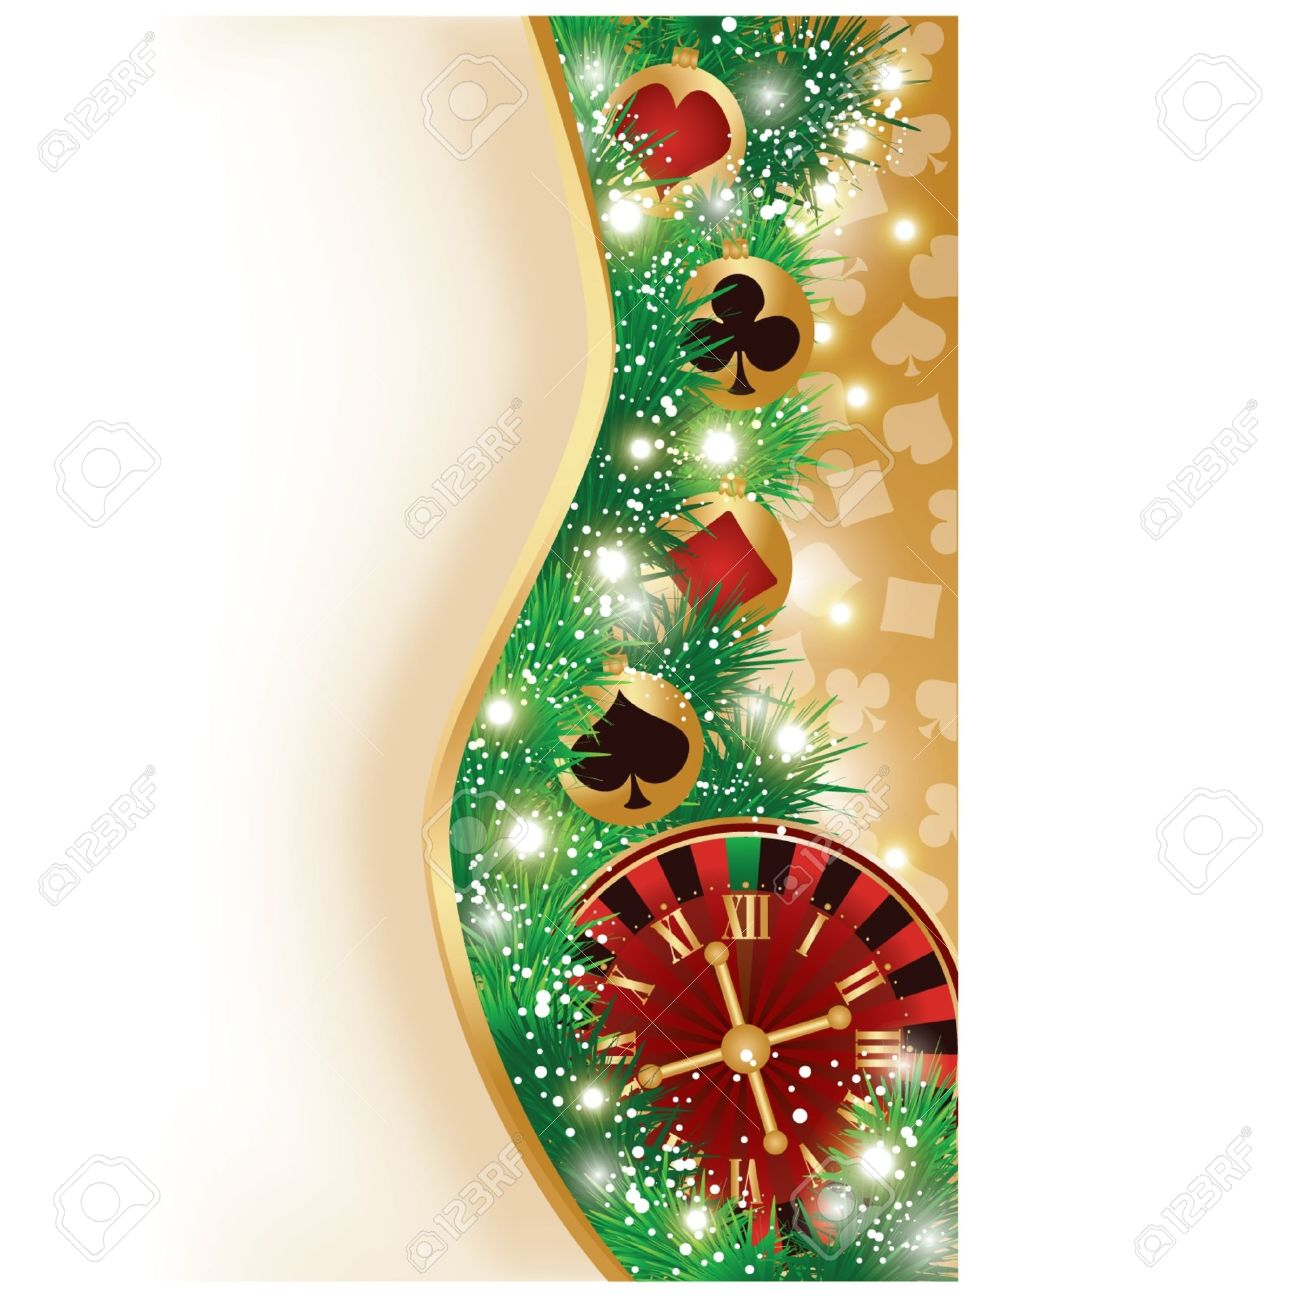 Casino Christmas banner with poker elements, vector illustration Stock Vector - 11437806